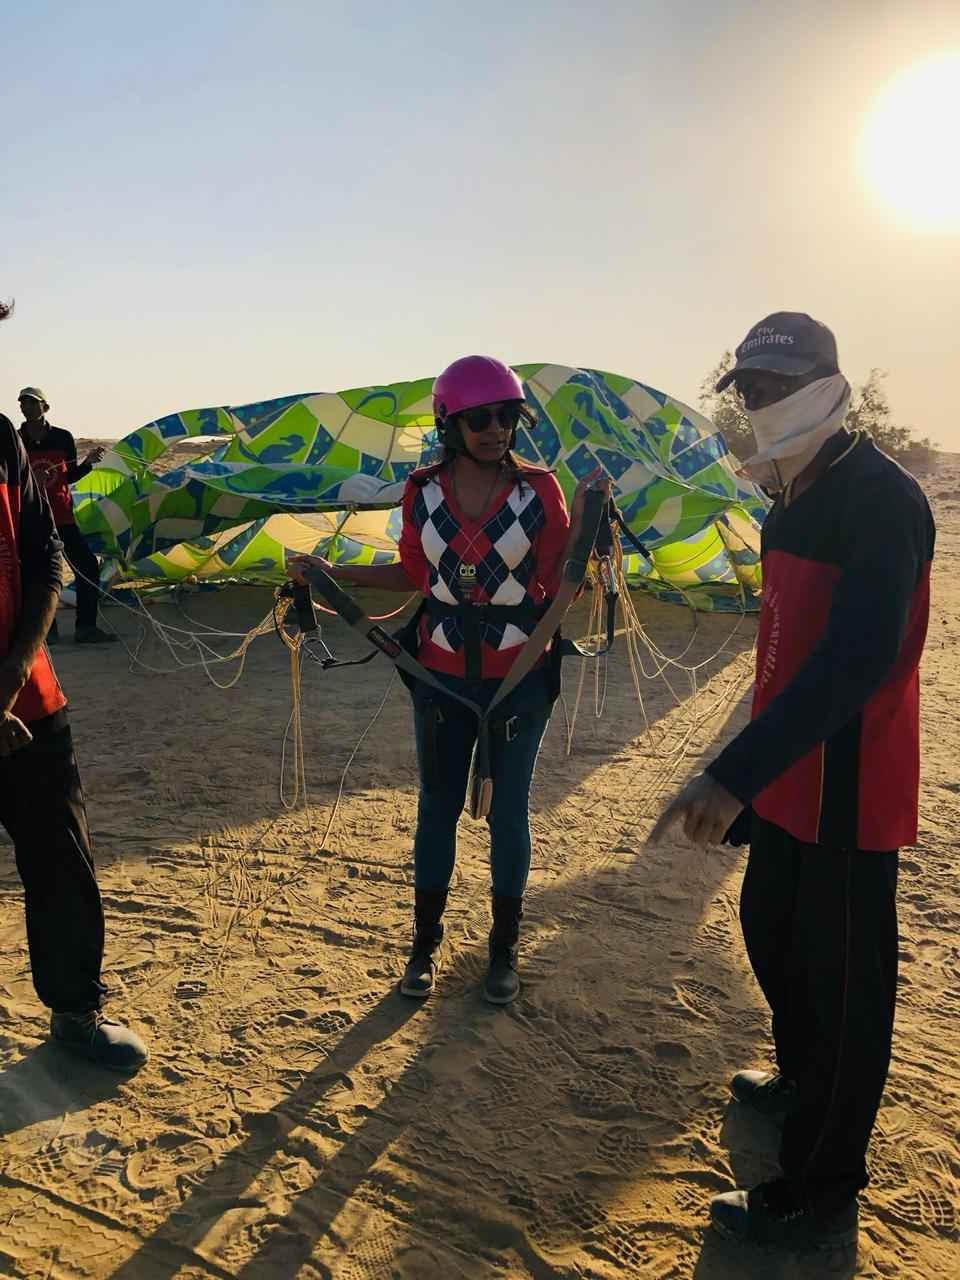 6 Excellent Destinations to Enjoy Parasailing in India